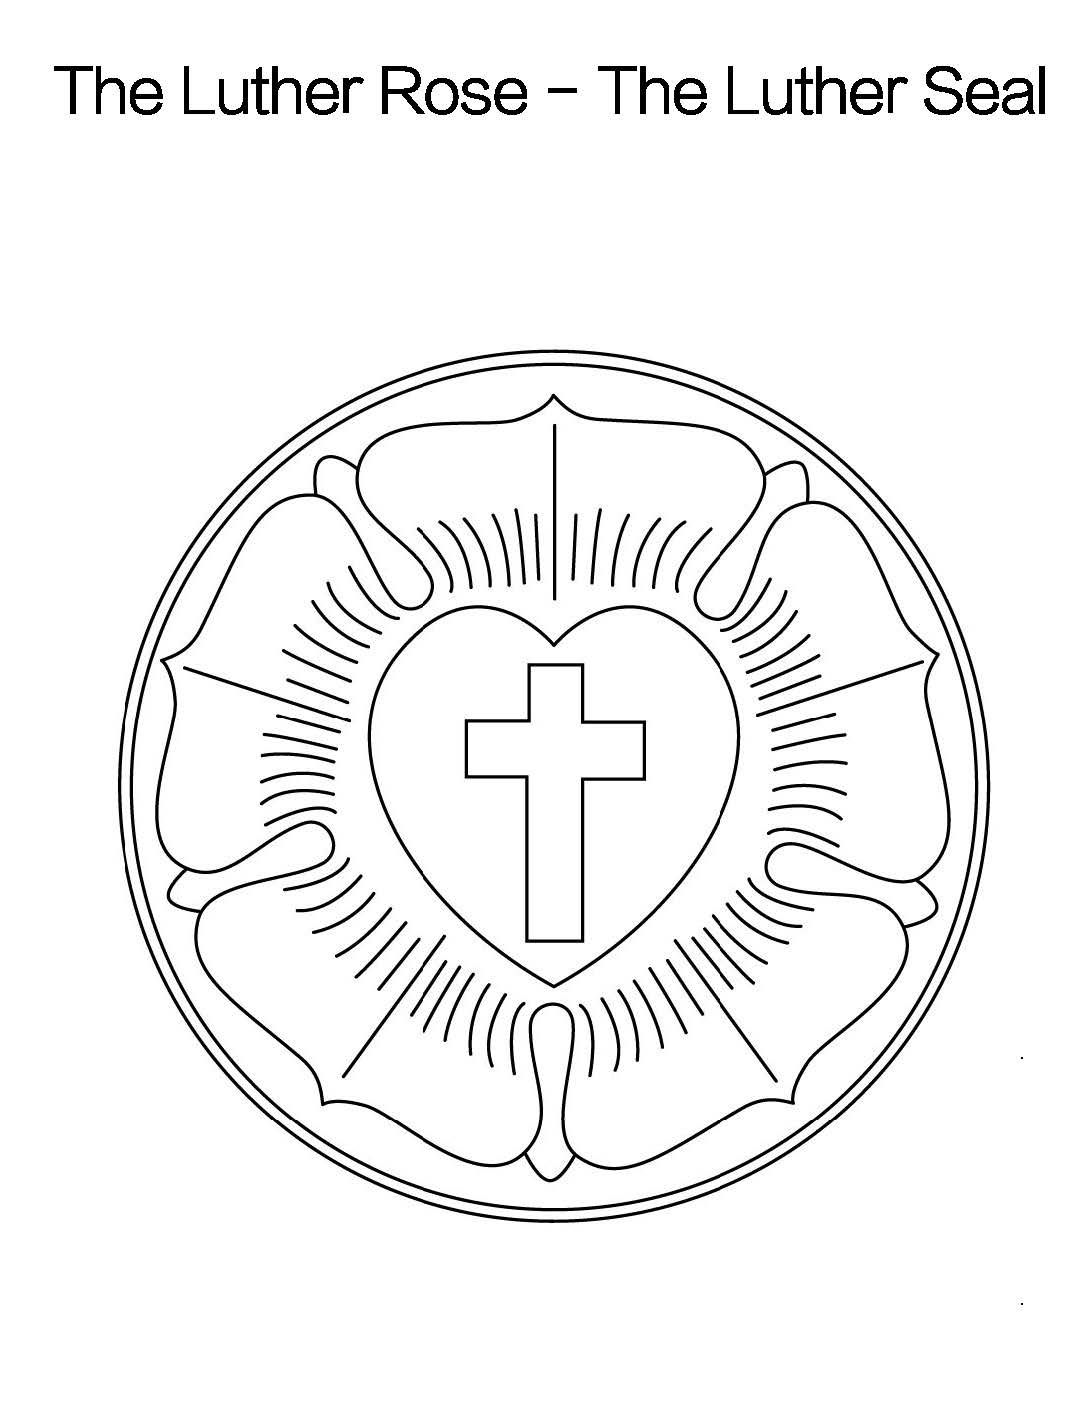 luther rose coloring page luther rose coloring sheet printable pdf download luther coloring rose page